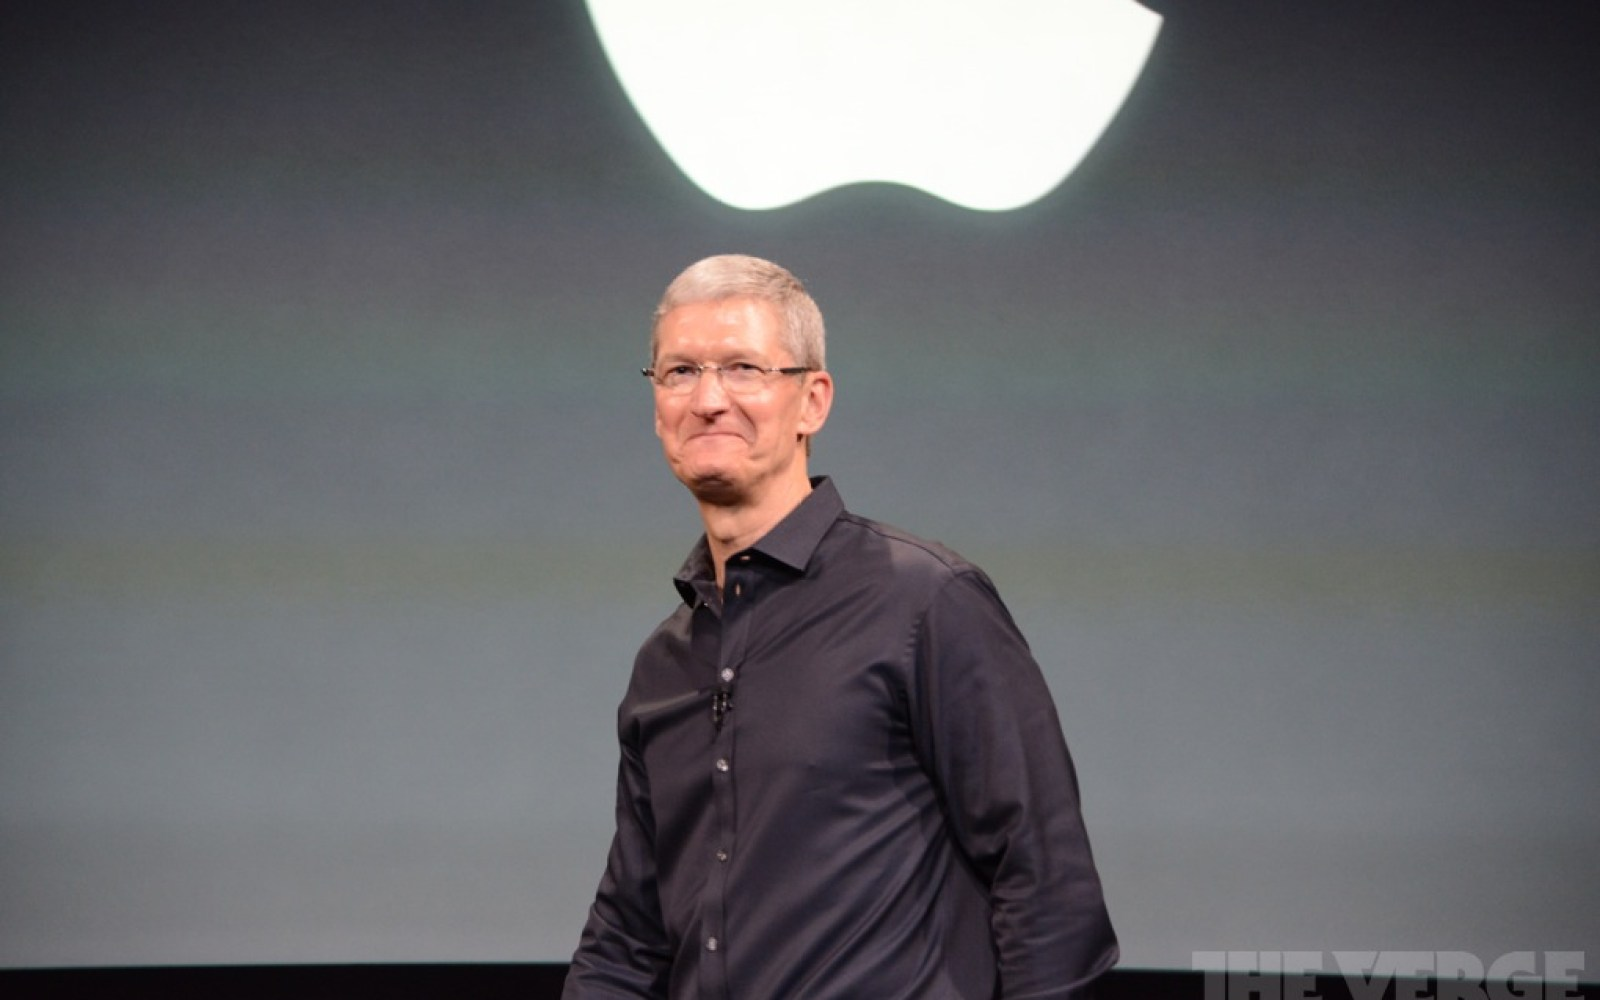 You can now watch Apple's September 10 iPhone event in its entirety online